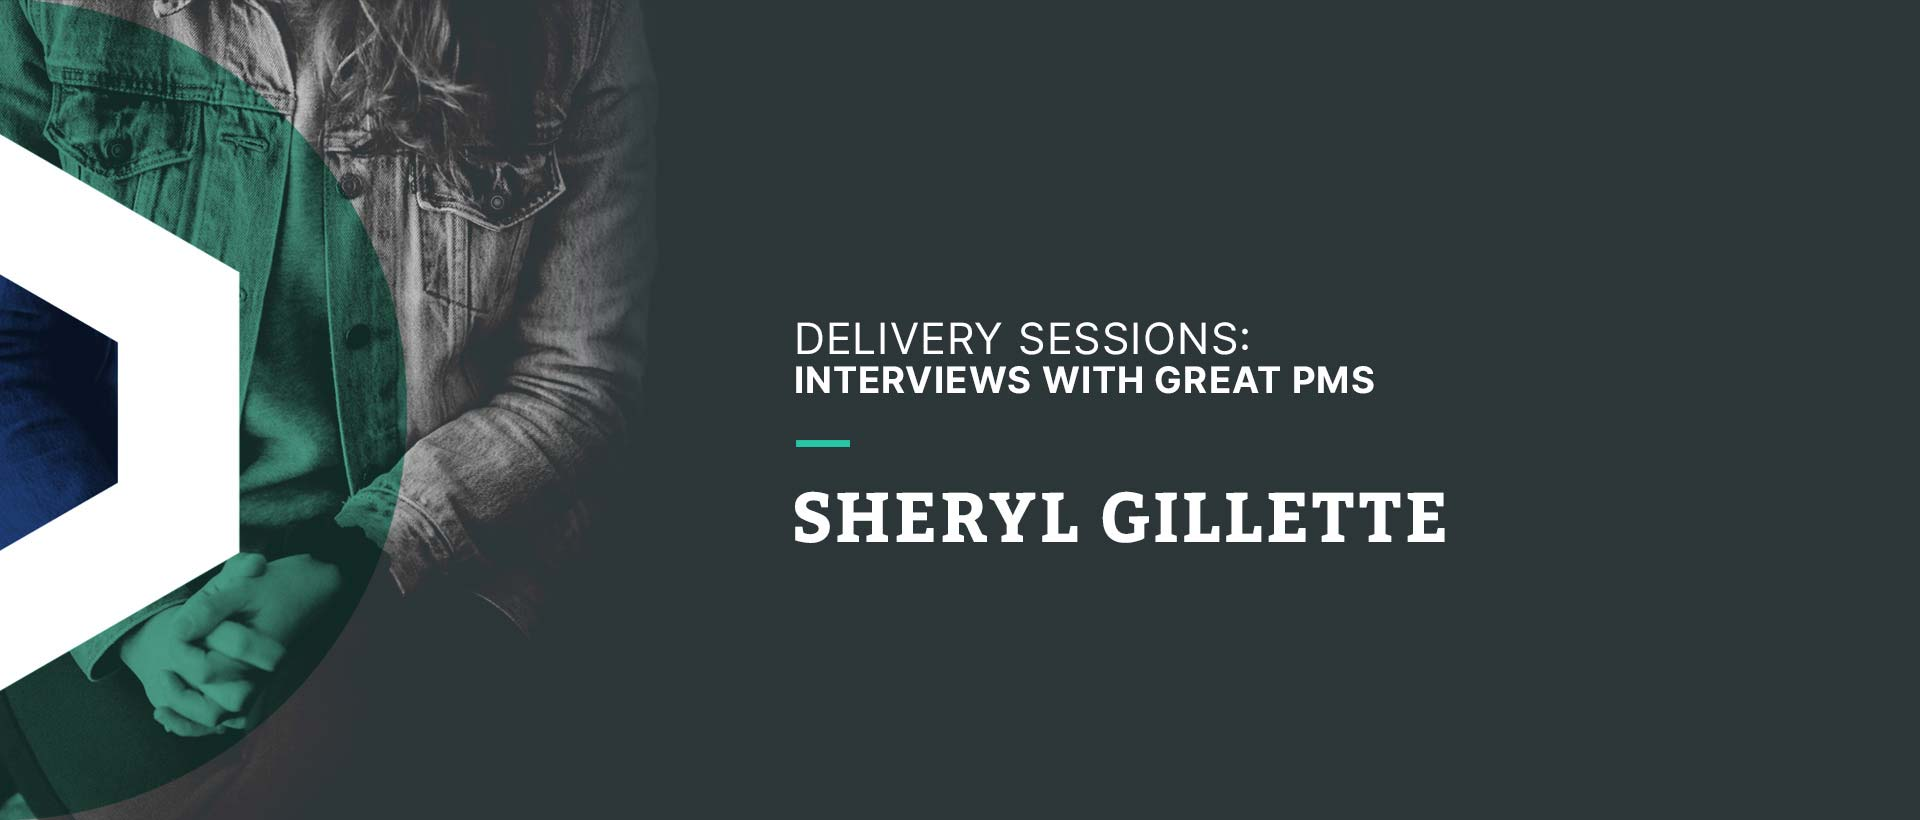 Delivery Sessions: Interviews with Great PMs (Sheryl Gillete)